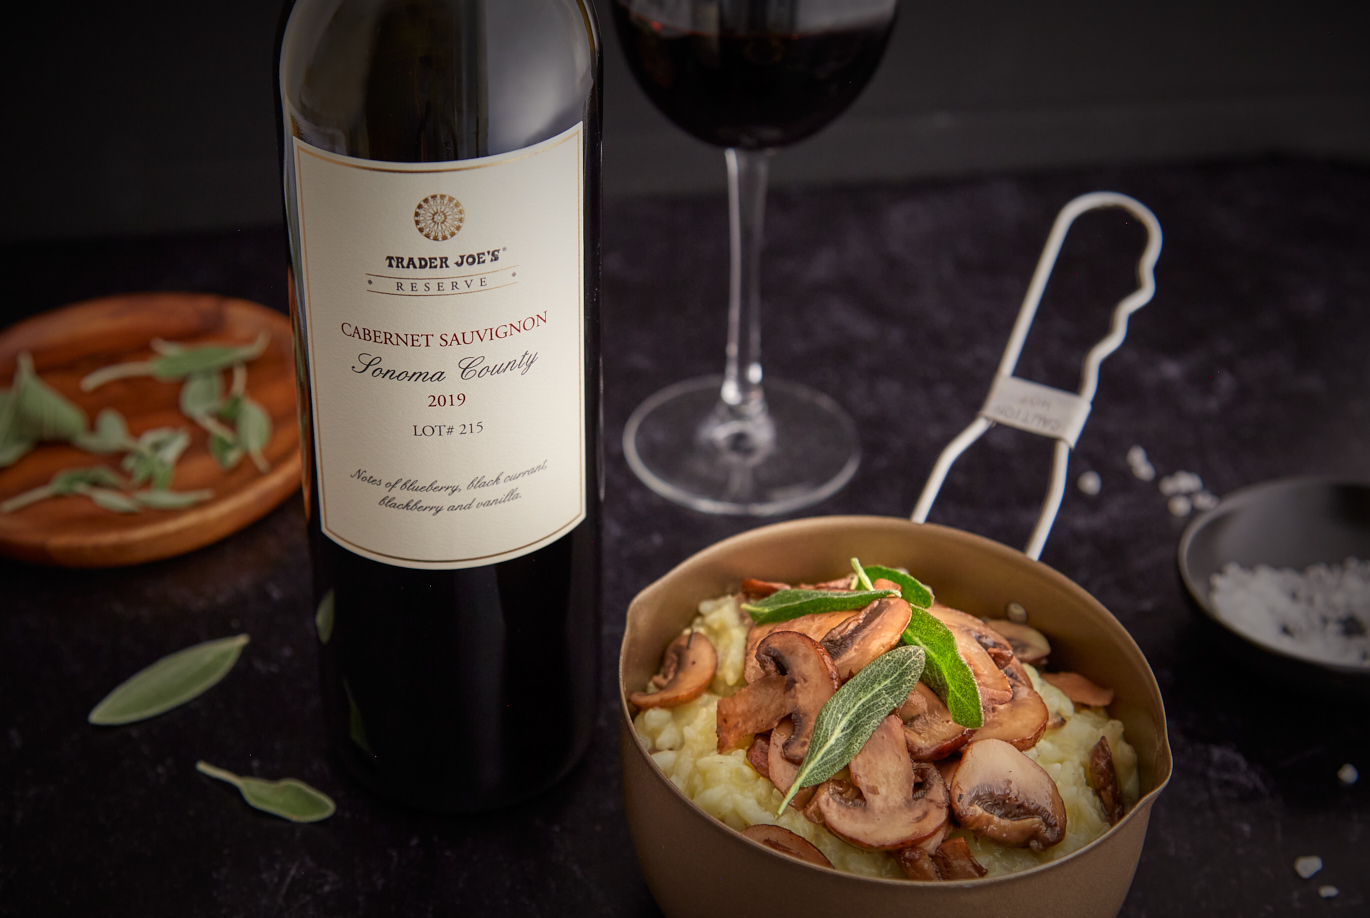 Trader Joe's Reserve Cabernet Sauvignon Sonoma County 2019 Lot 215 bottle and glass of wine next to a small pot with mushroom risottor